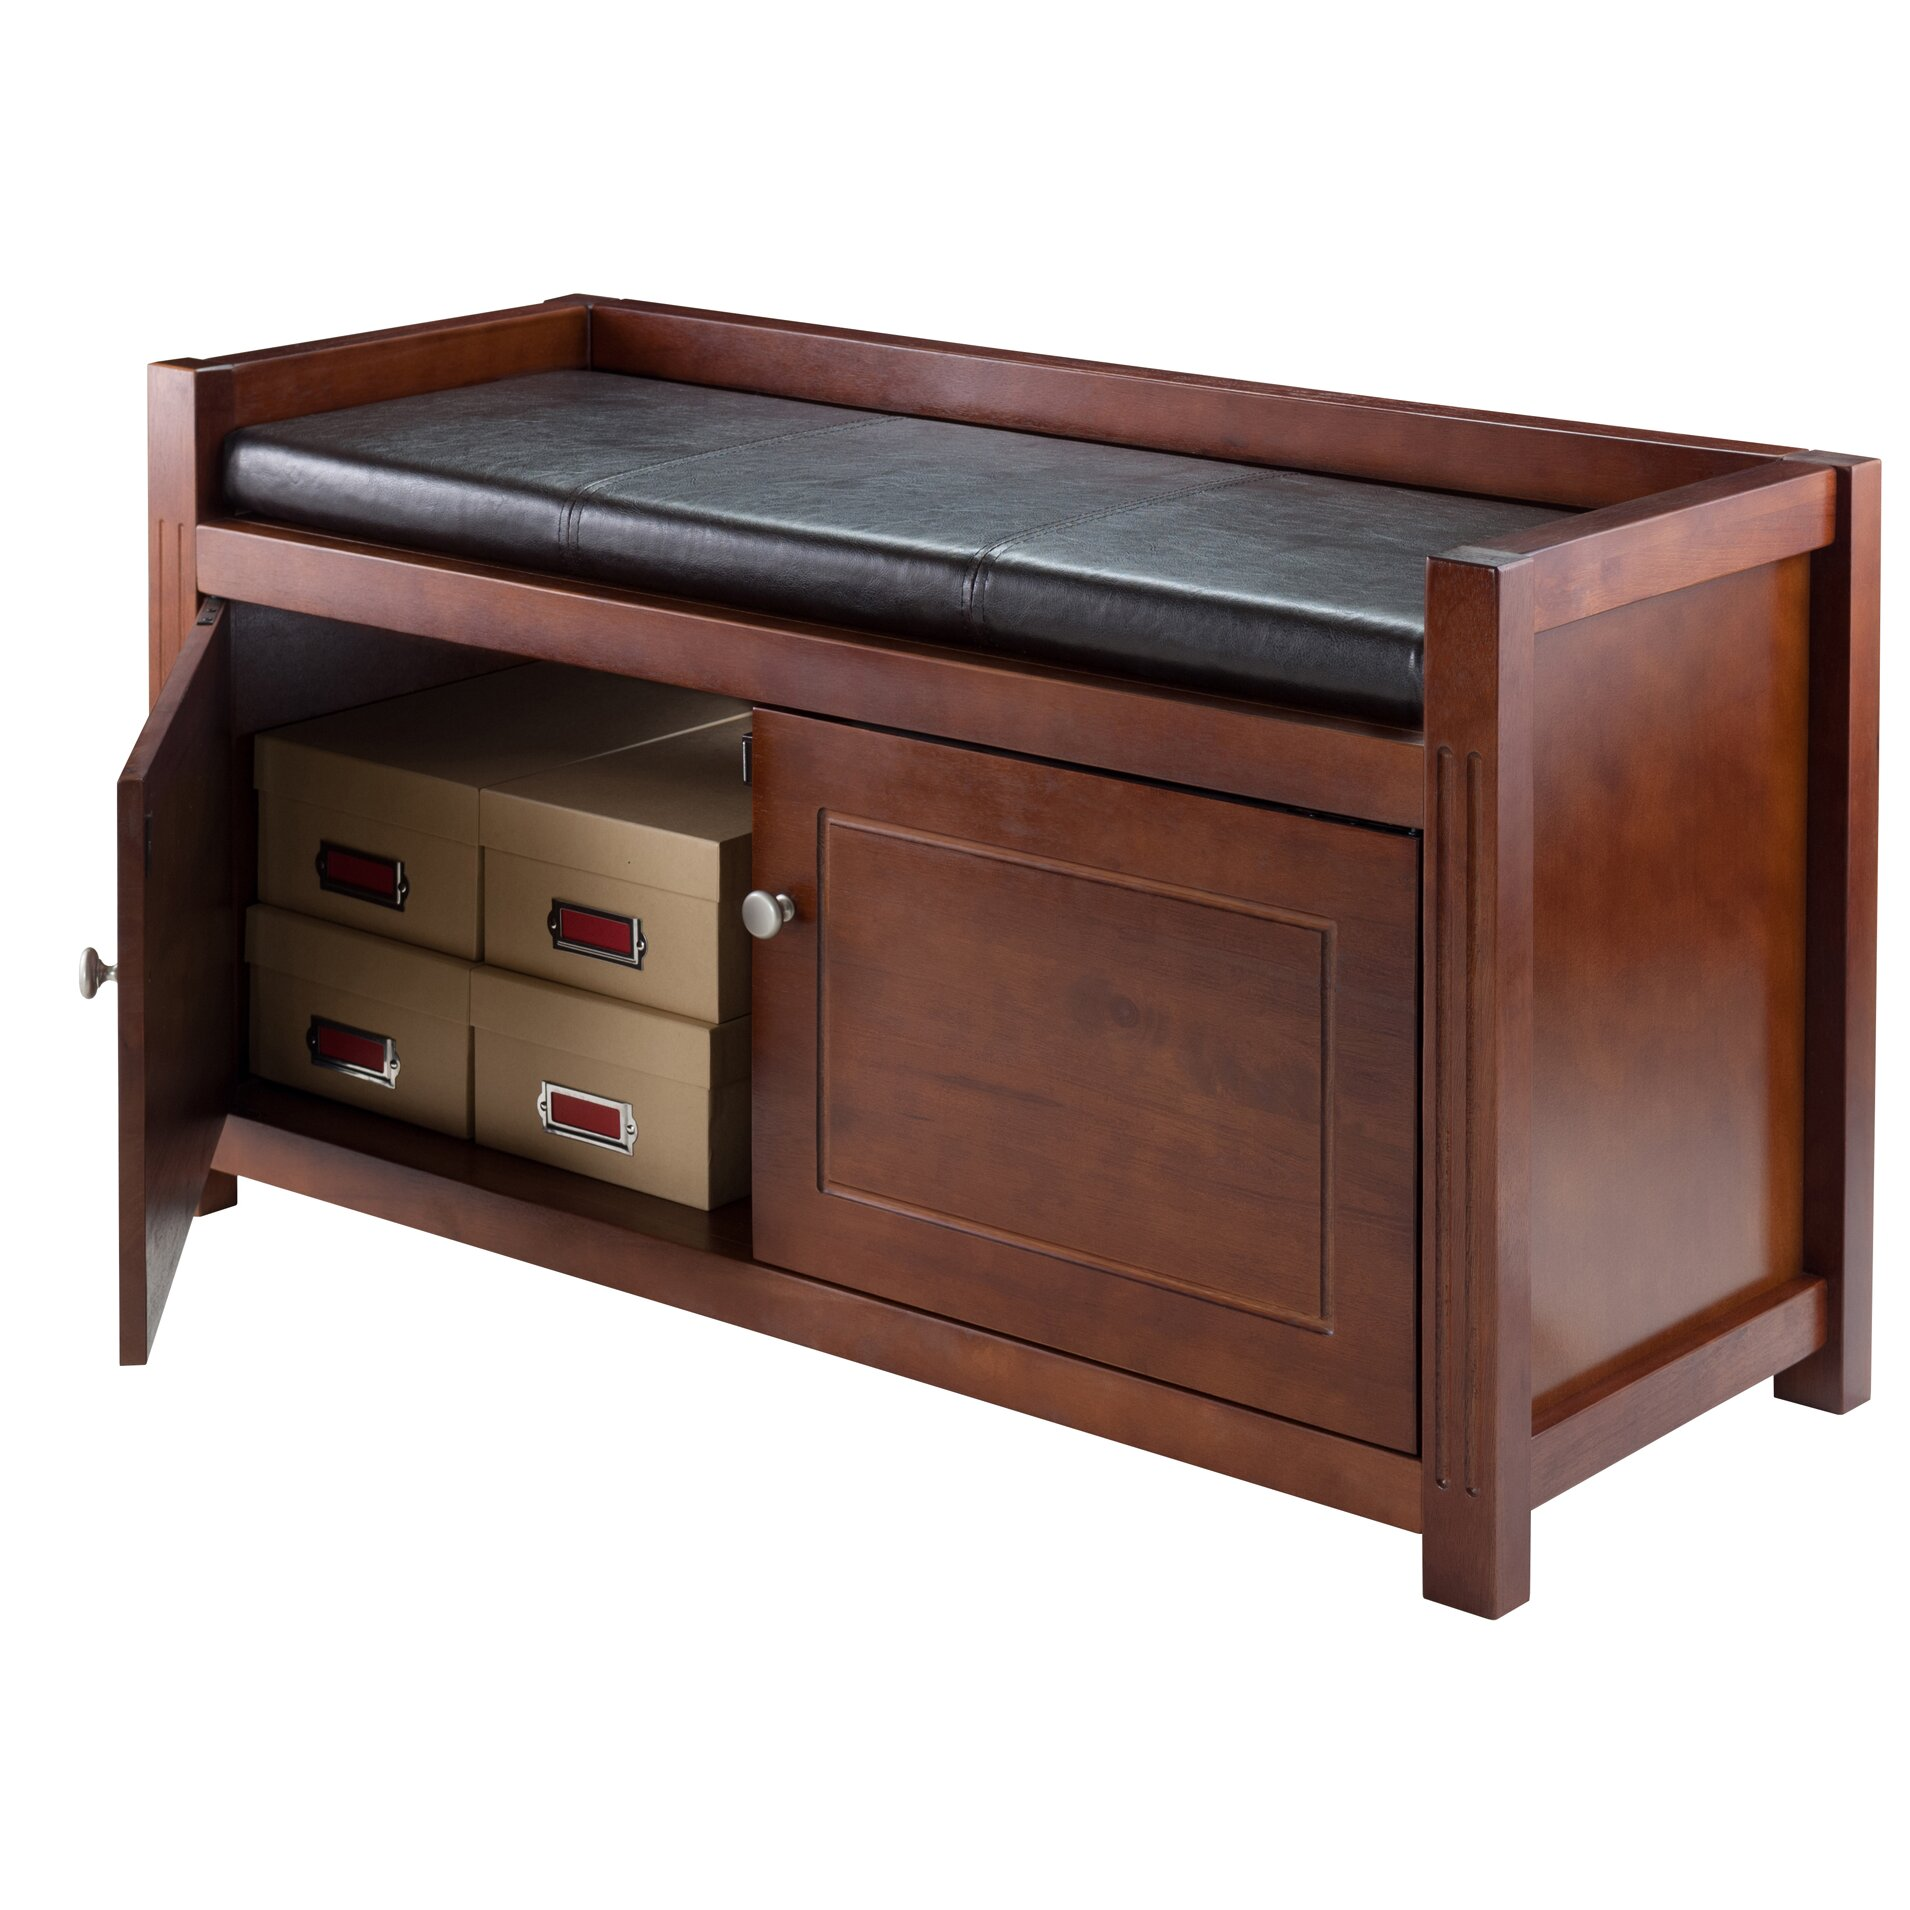 Luxury Home Storage Entryway Bench Wayfair